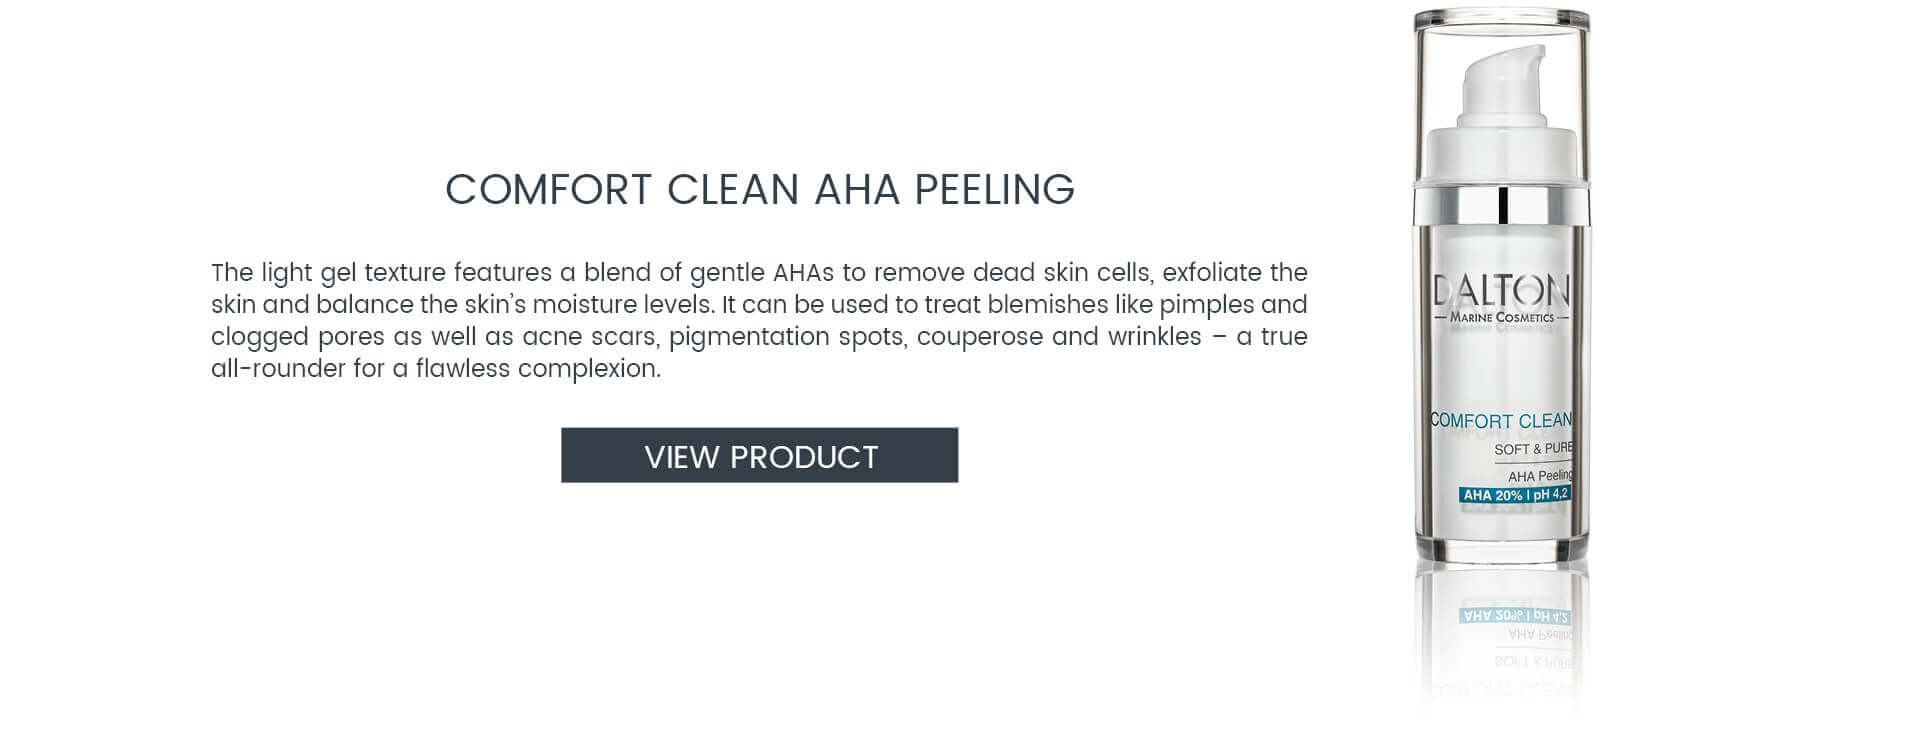 AHA Peeling to treat pimples and blemishes